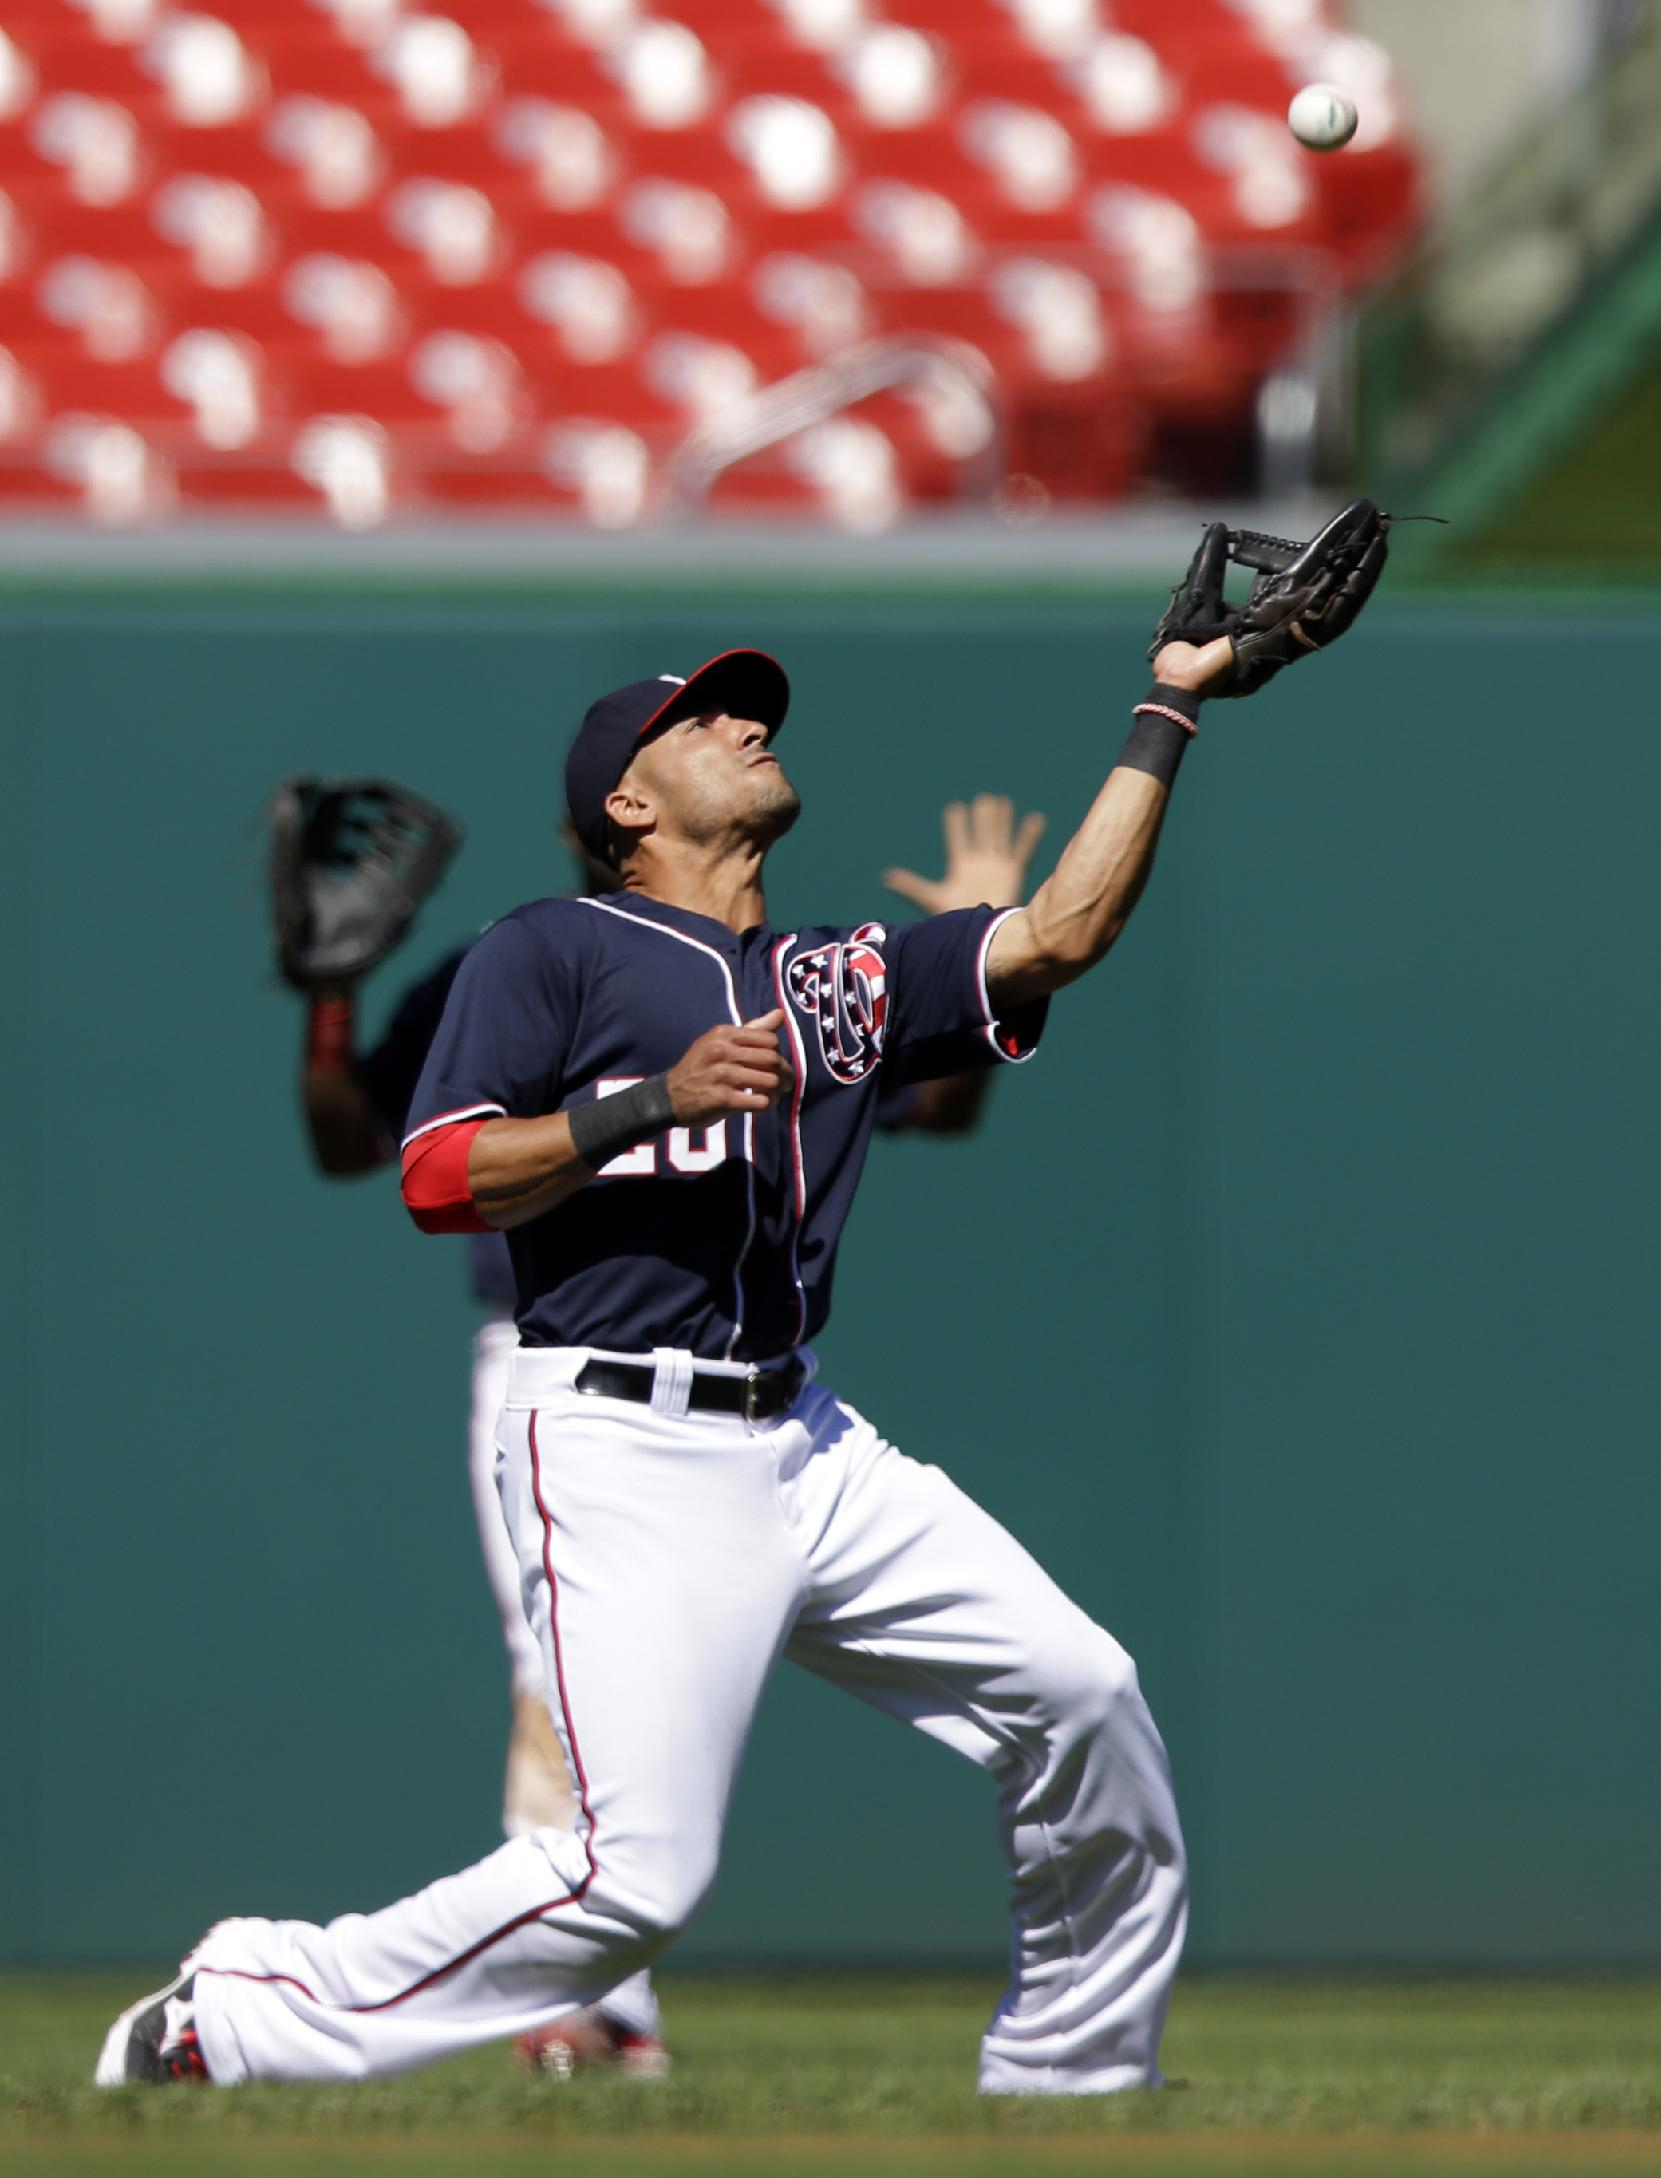 Washington Nationals shortstop Ian Desmond (20) catches a fly ball hit by Atlanta Braves' Brian McCann during the fourth inning of the first baseball game of a doubleheader at Nationals Park Tuesday, Sept. 17, 2013, in Washington